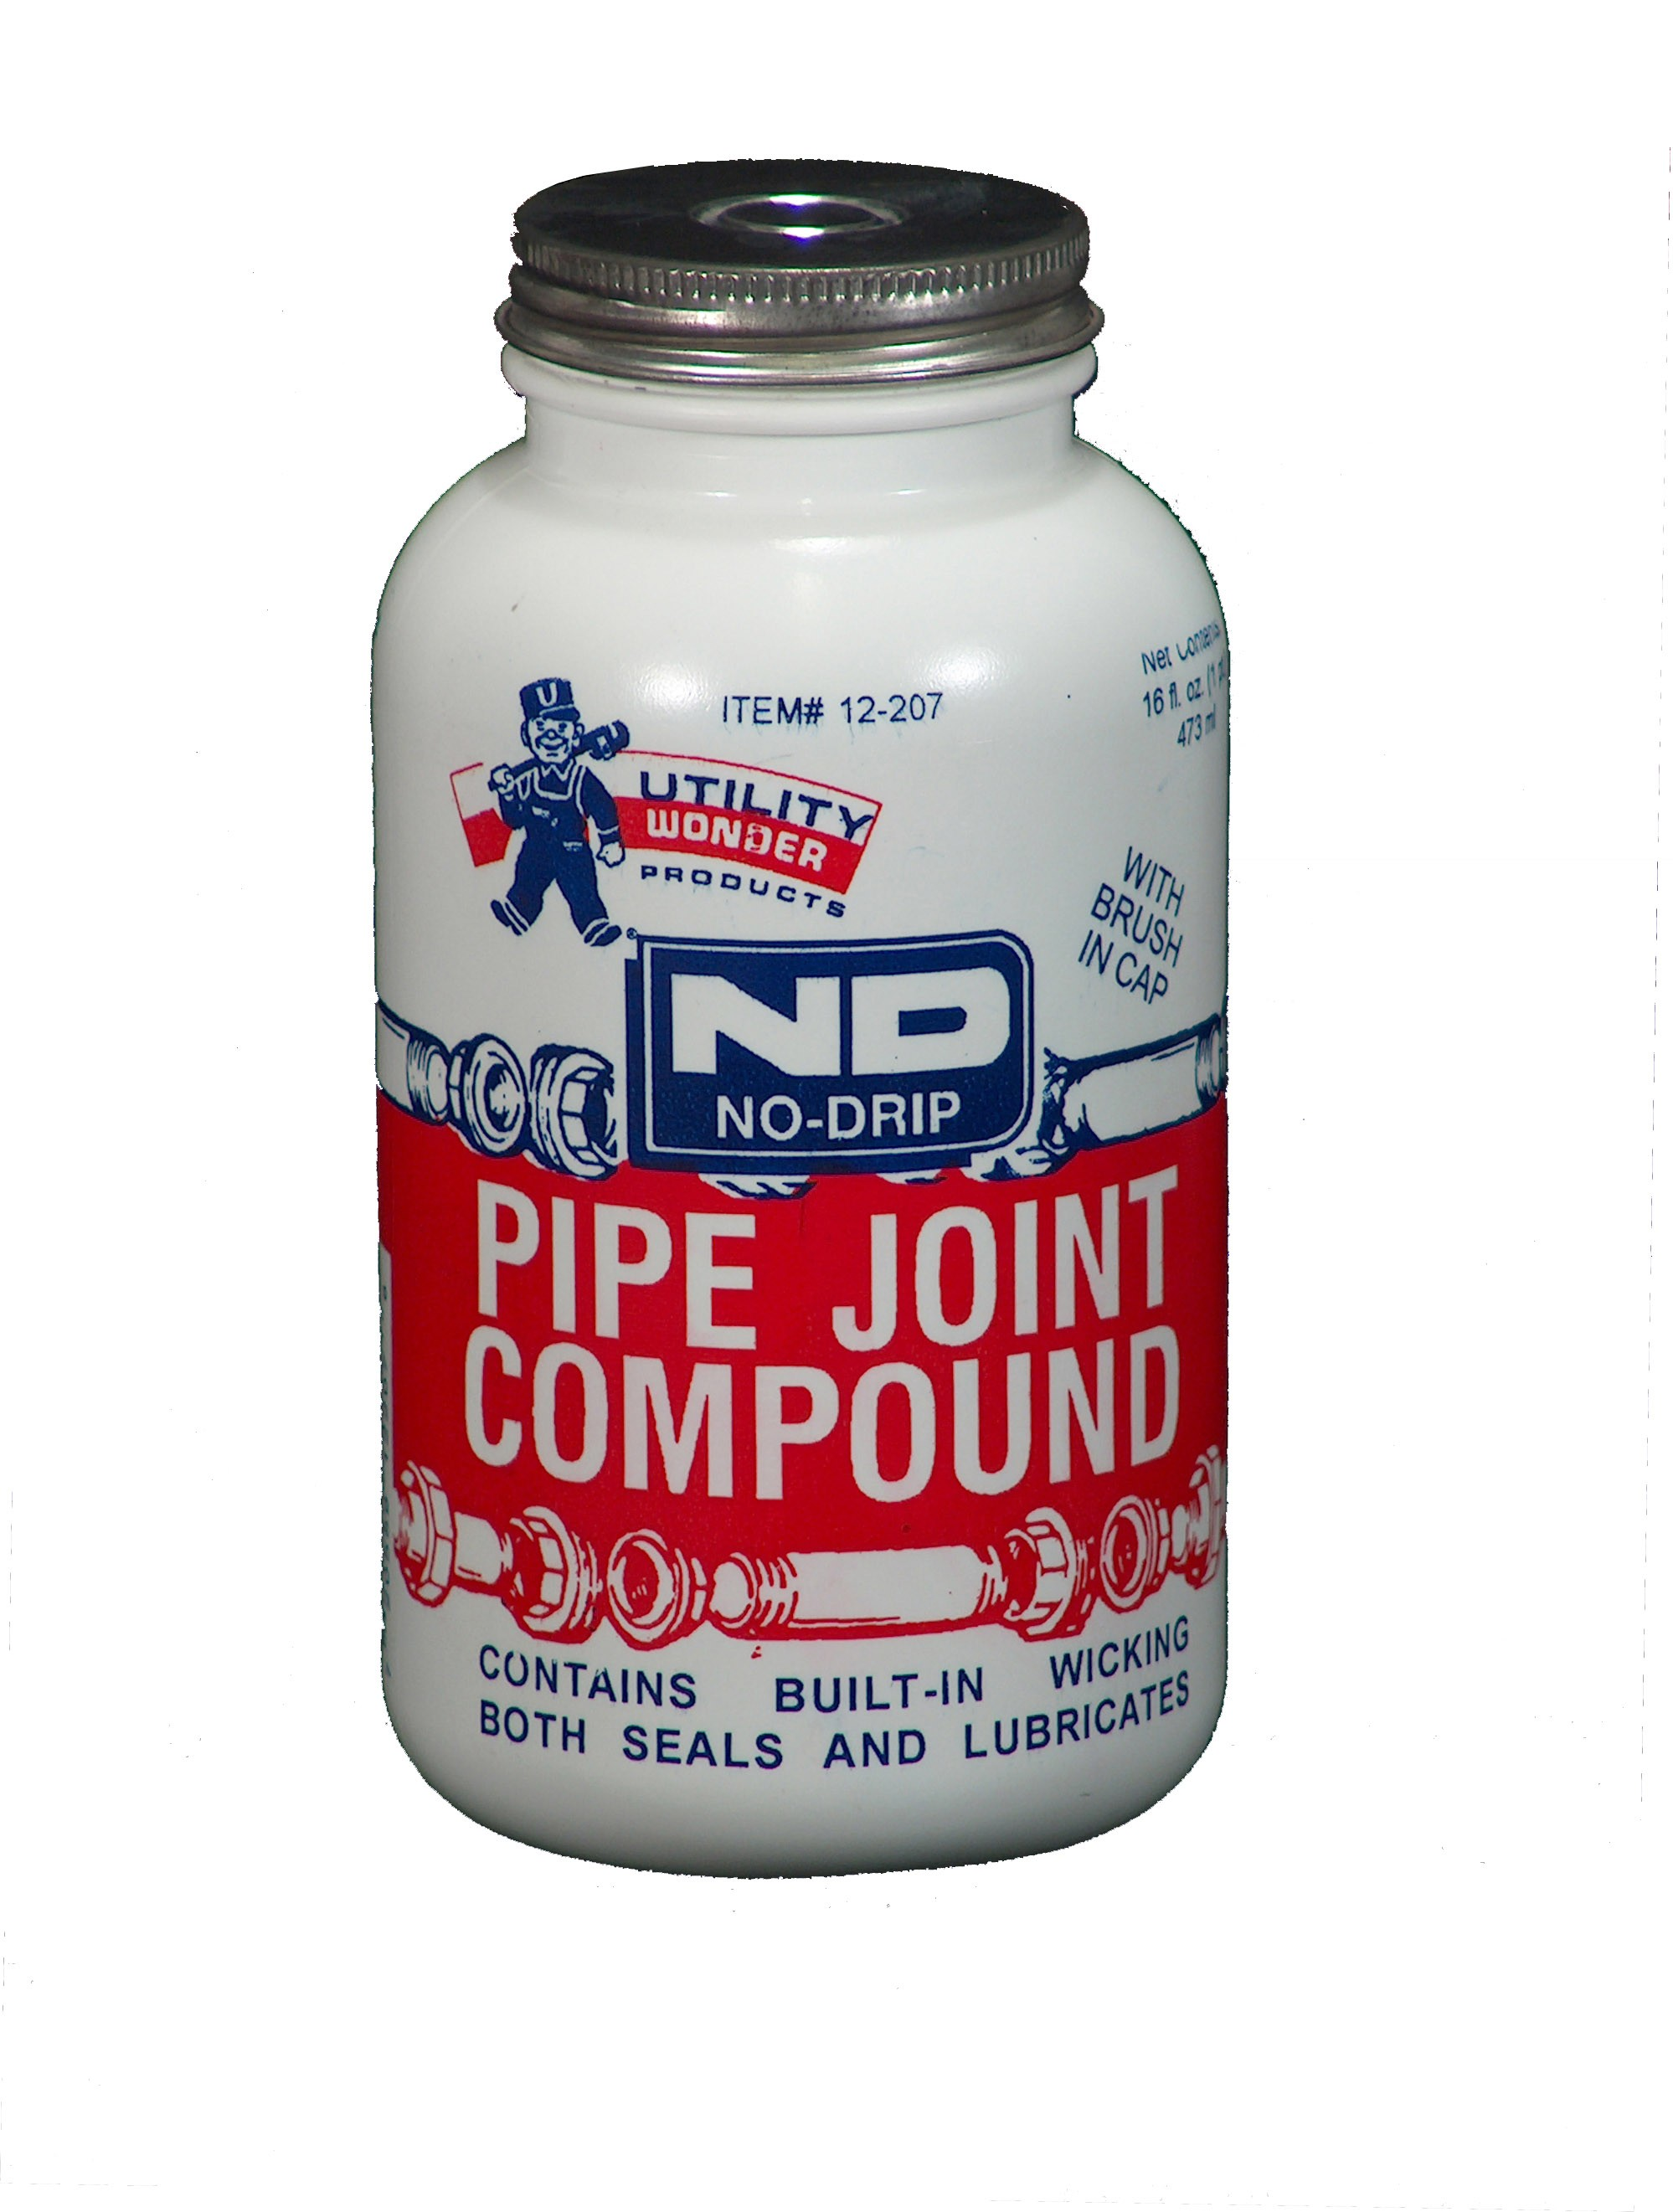 NO-DRIP PIPE JOINT COMPOUND